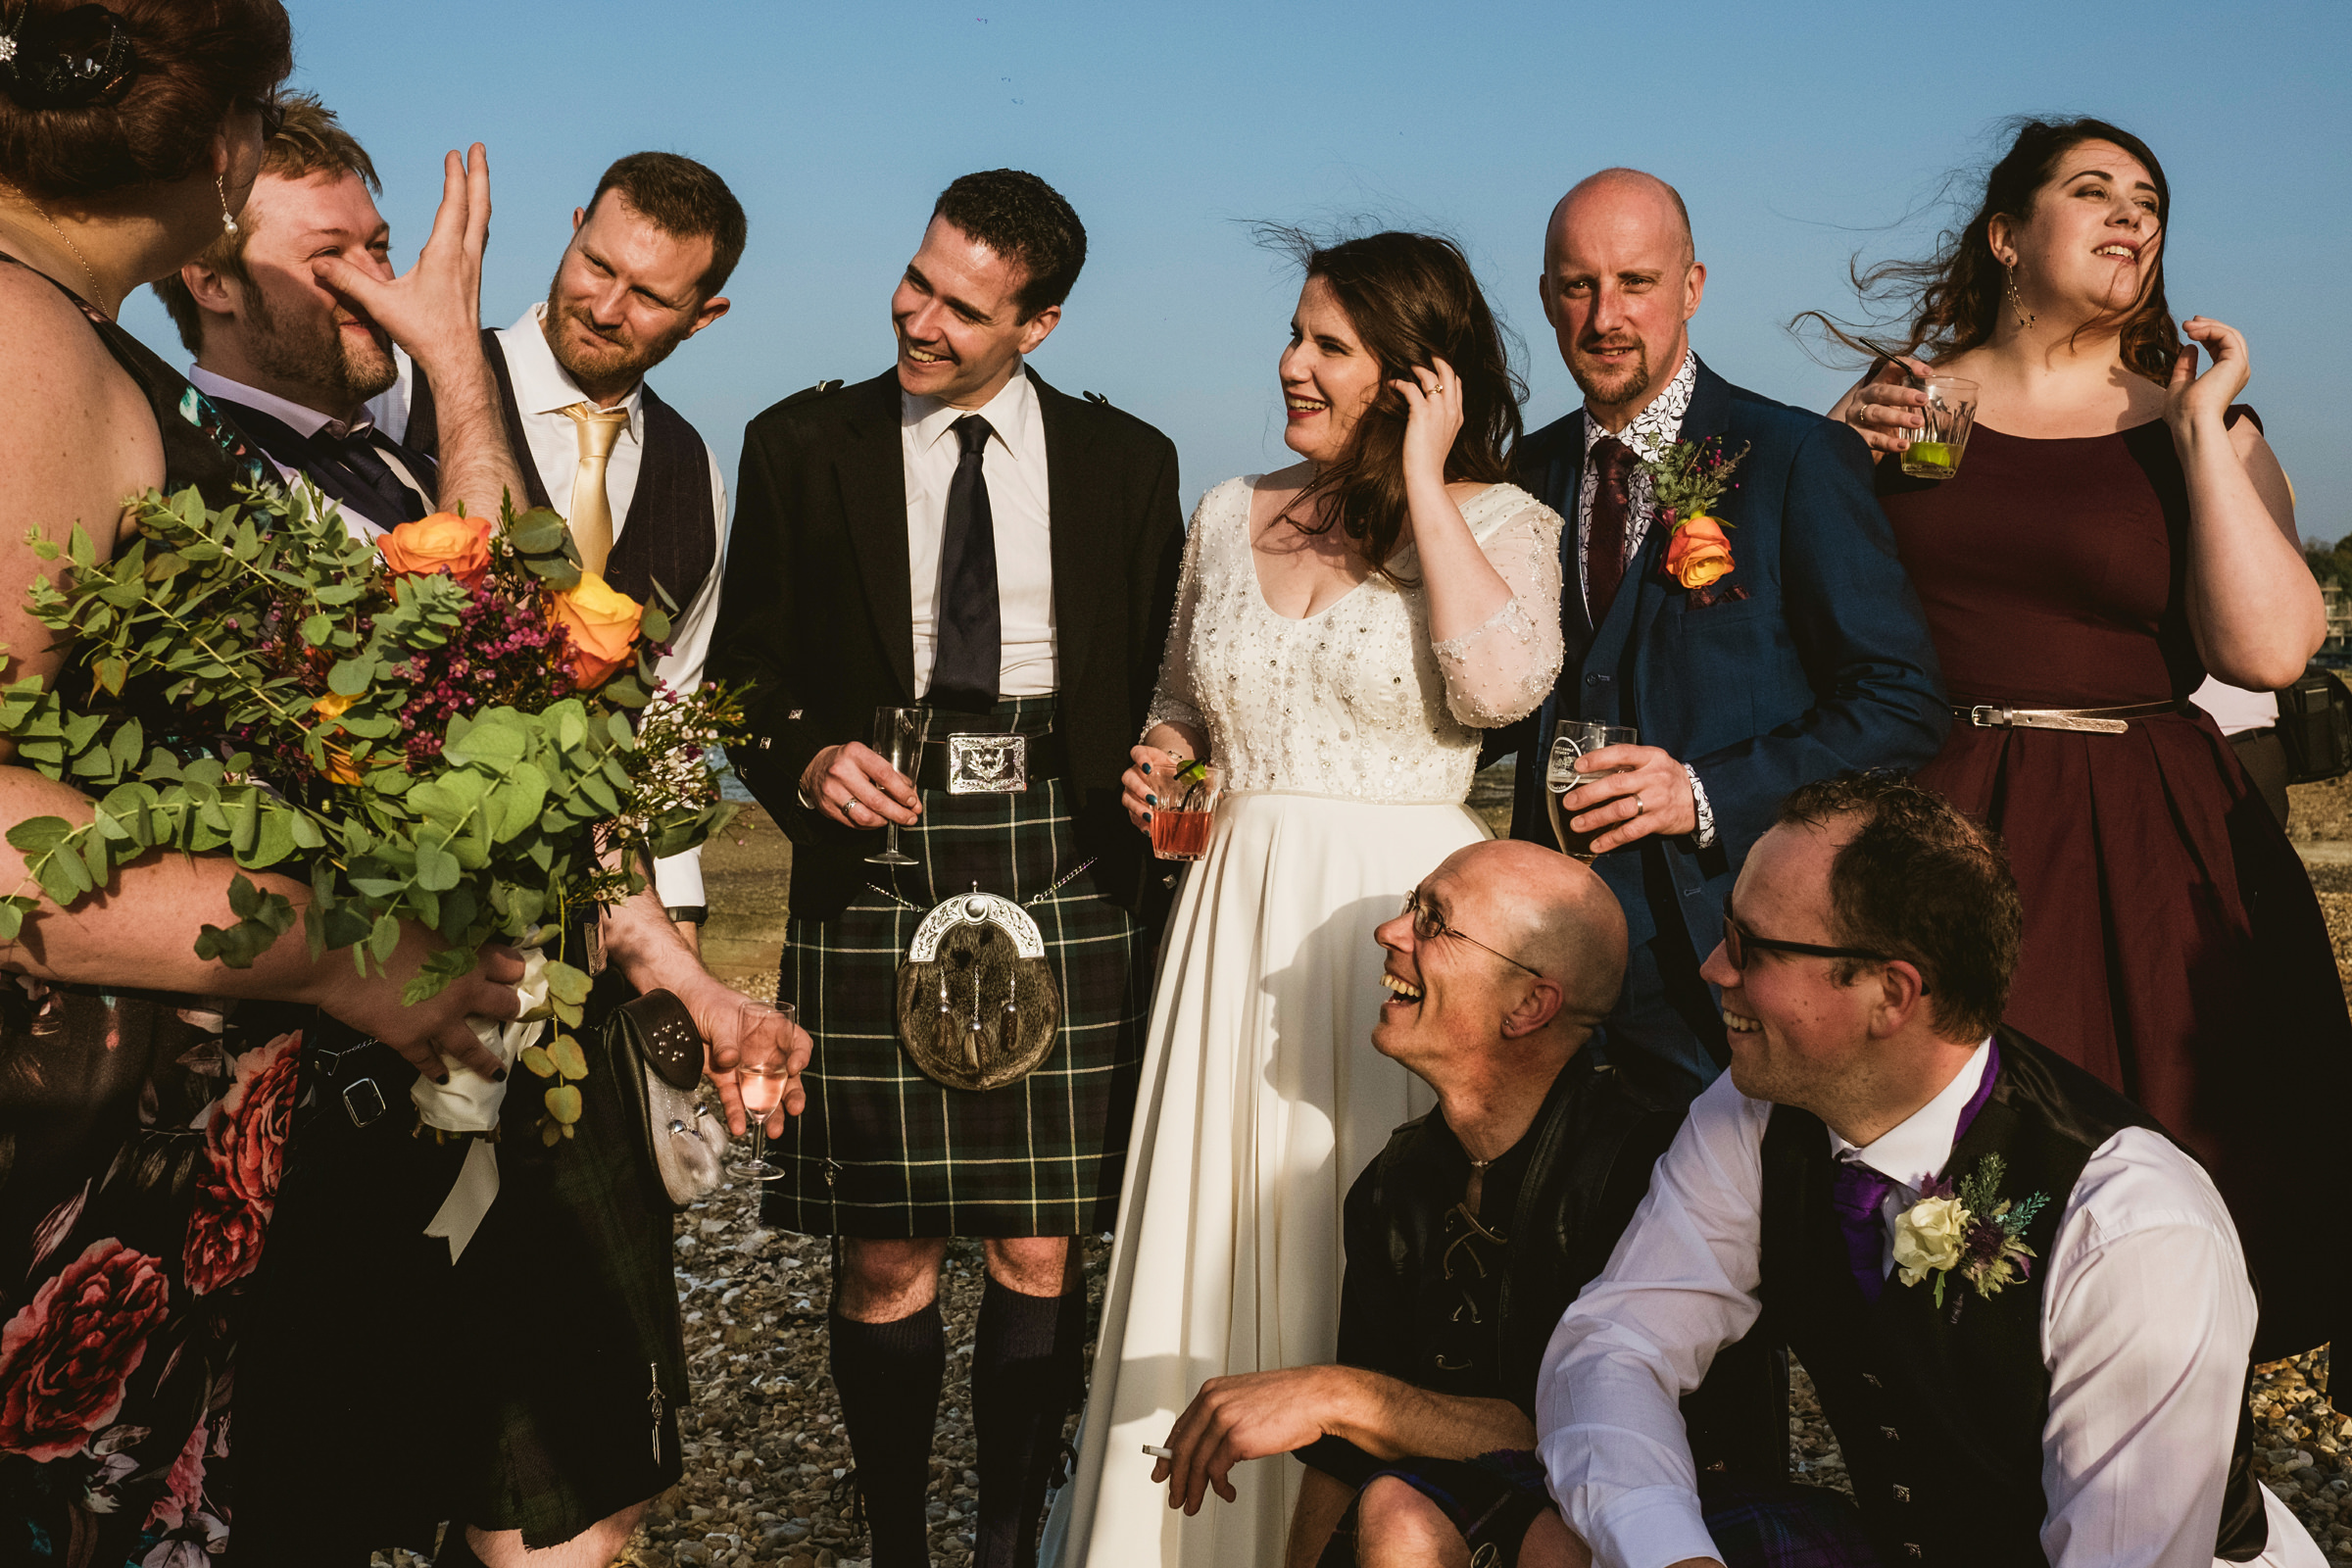 East Quay wedding storytelling moment - photo by York Place Studios